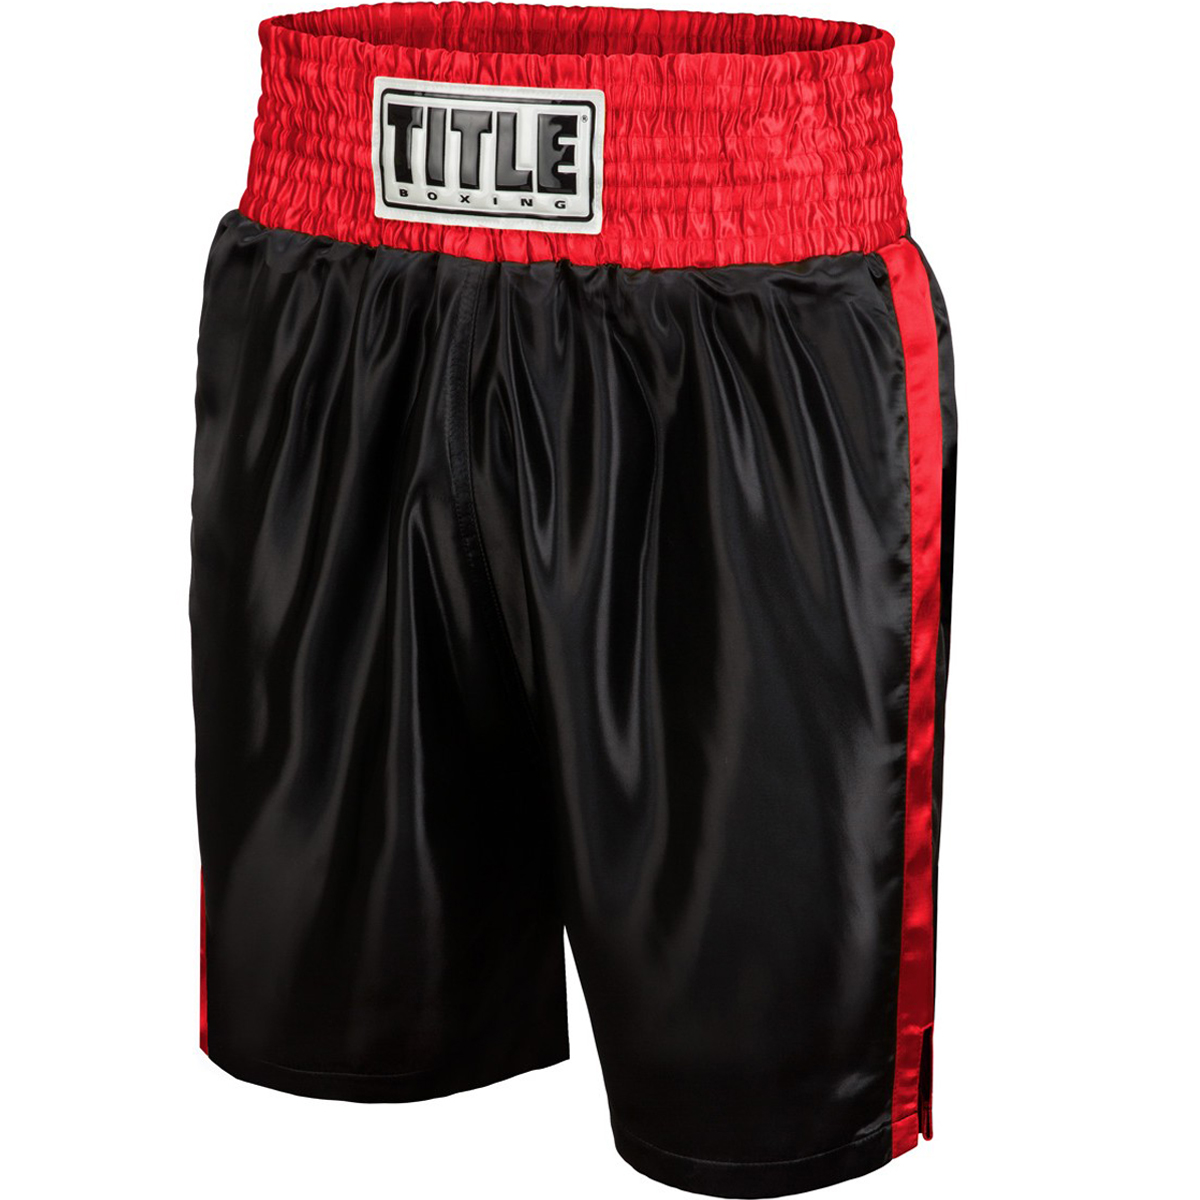 ferricd.cf Your source for the best Boxing and MMA equipment, apparel and accessories.